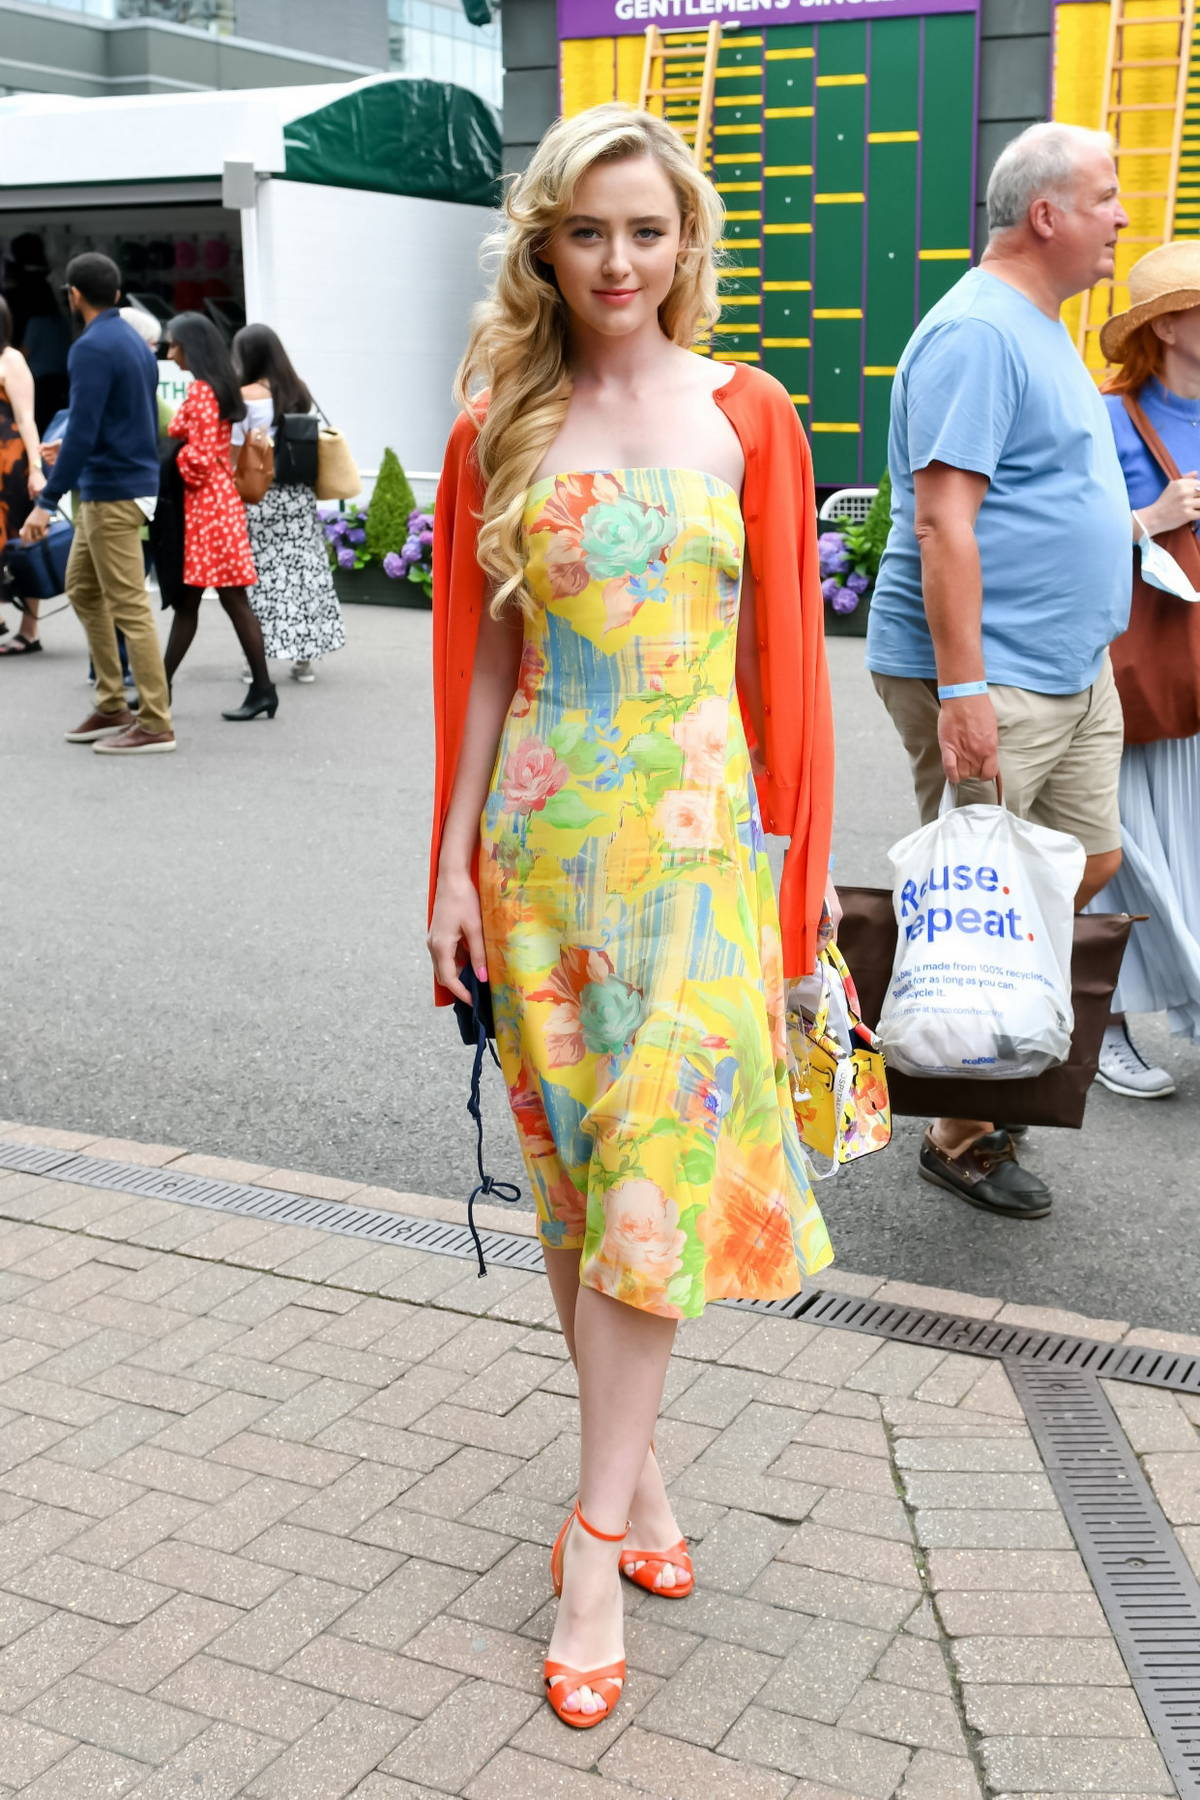 Kathryn Newton attends the Polo Ralph Lauren VIP suite during 2021 Wimbledon in London, UK